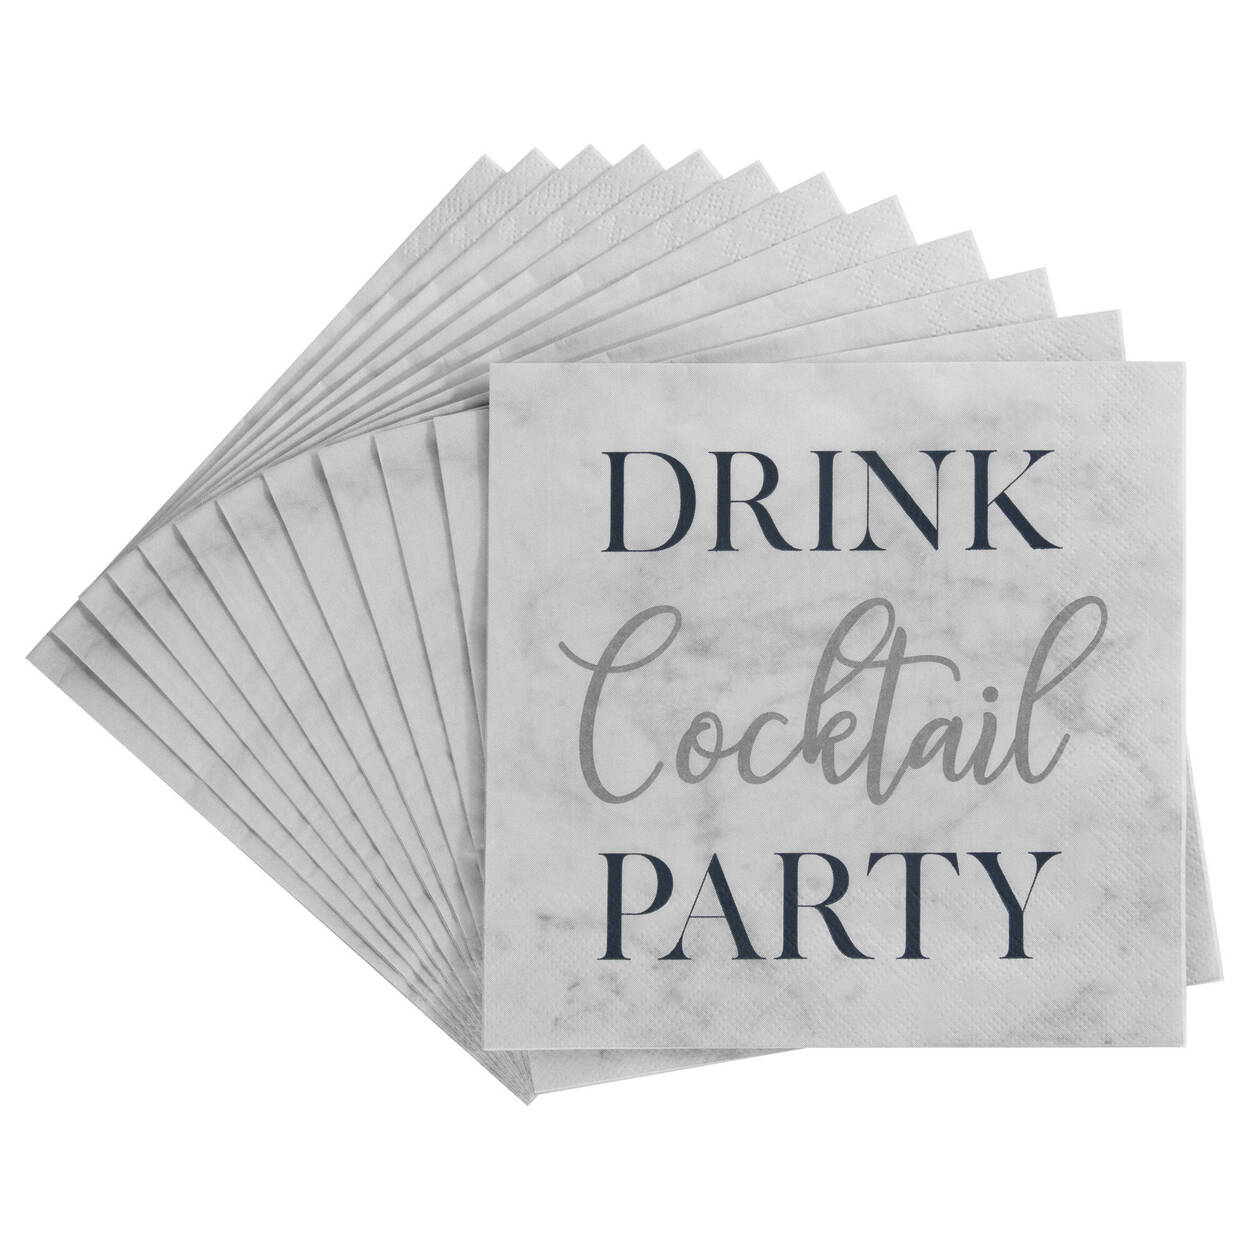 Pack of 20 Cocktail Paper Napkins